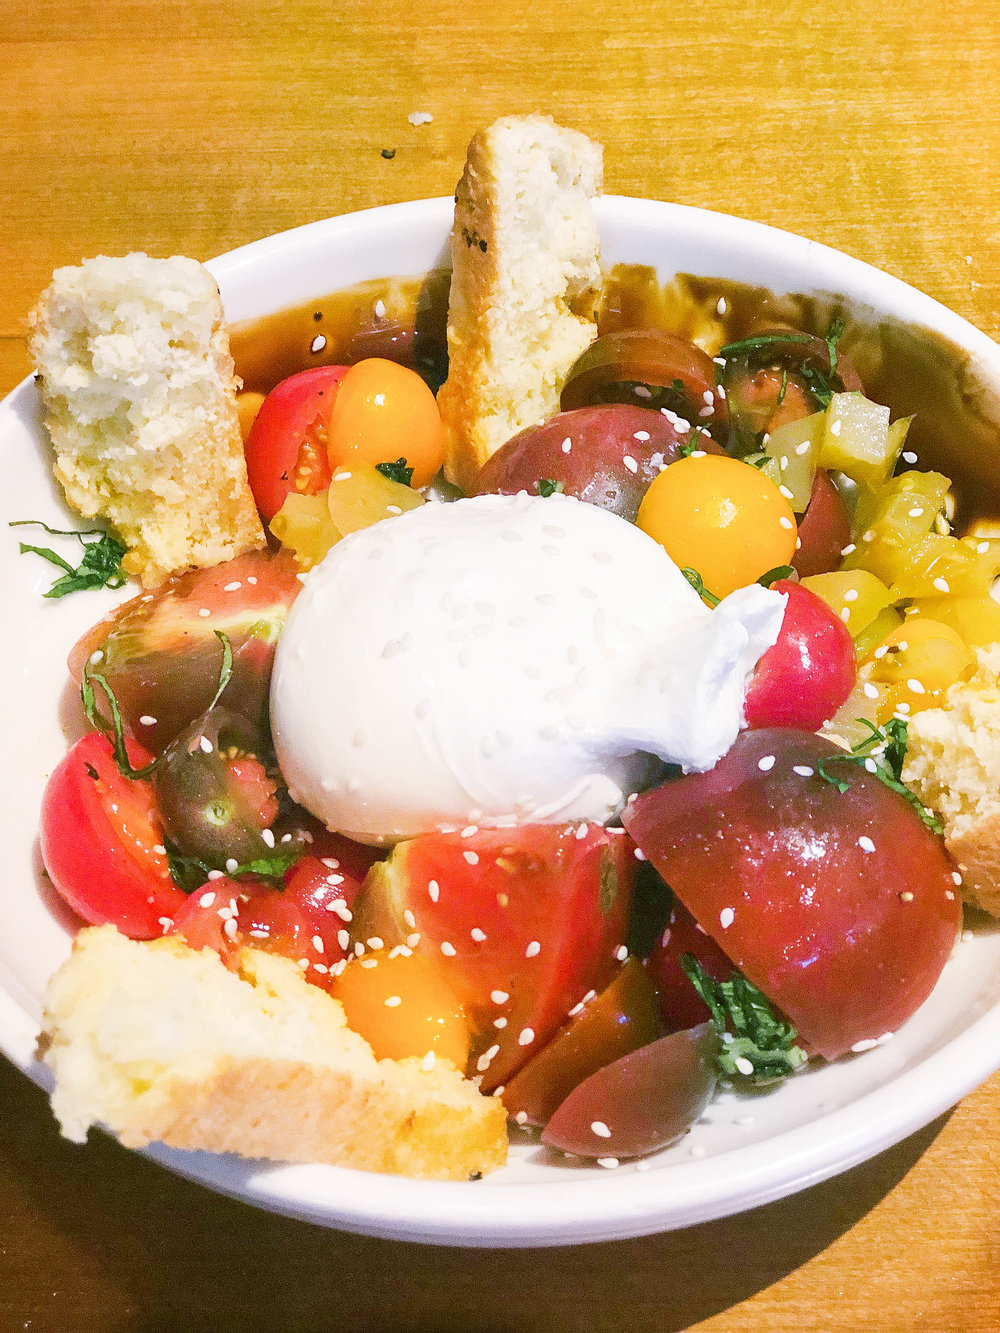 Heirloom Tomatoes & Burrata :  basil, pickled green tomatoes, balsamic-sorghum glaze, biscuit crackers